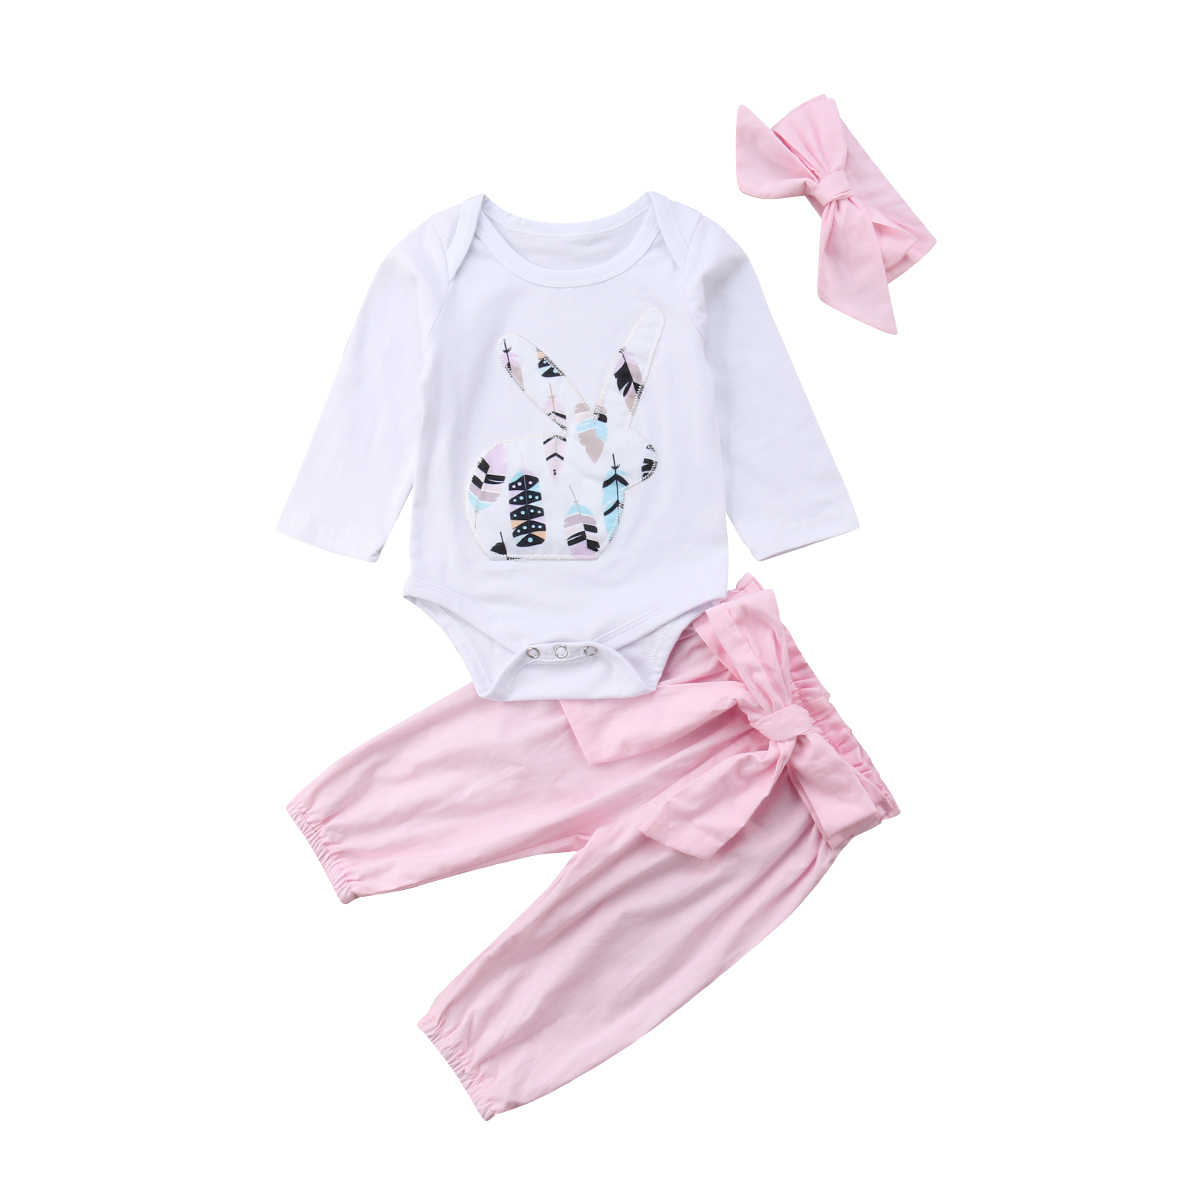 f6a3f9fe66ce Detail Feedback Questions about Cute Newborn Clothes Set Bunny Print ...